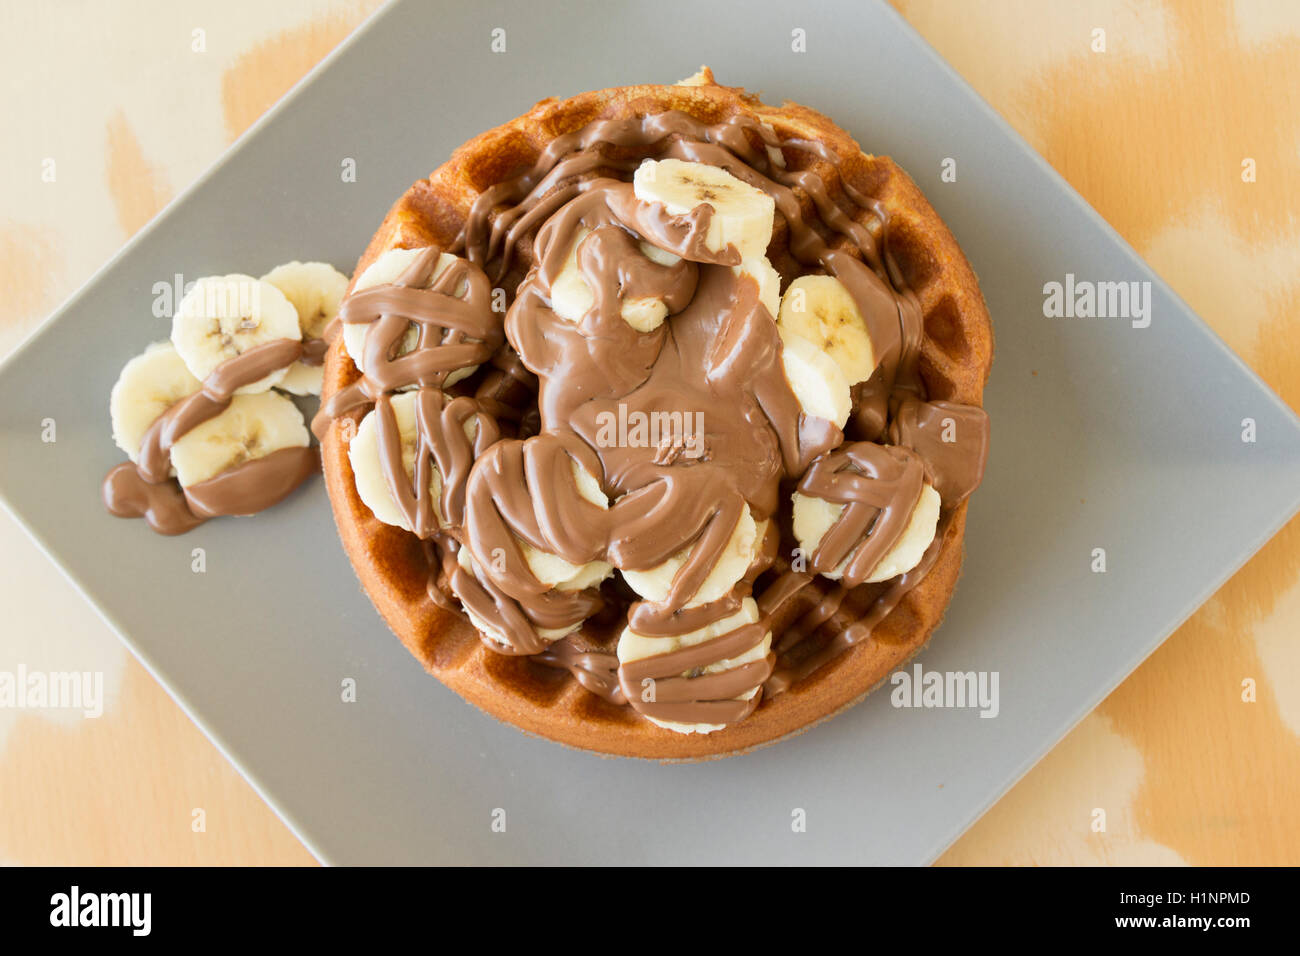 Tasty waffle with banana slices and chocolate cream on the top served in a plate - Stock Image